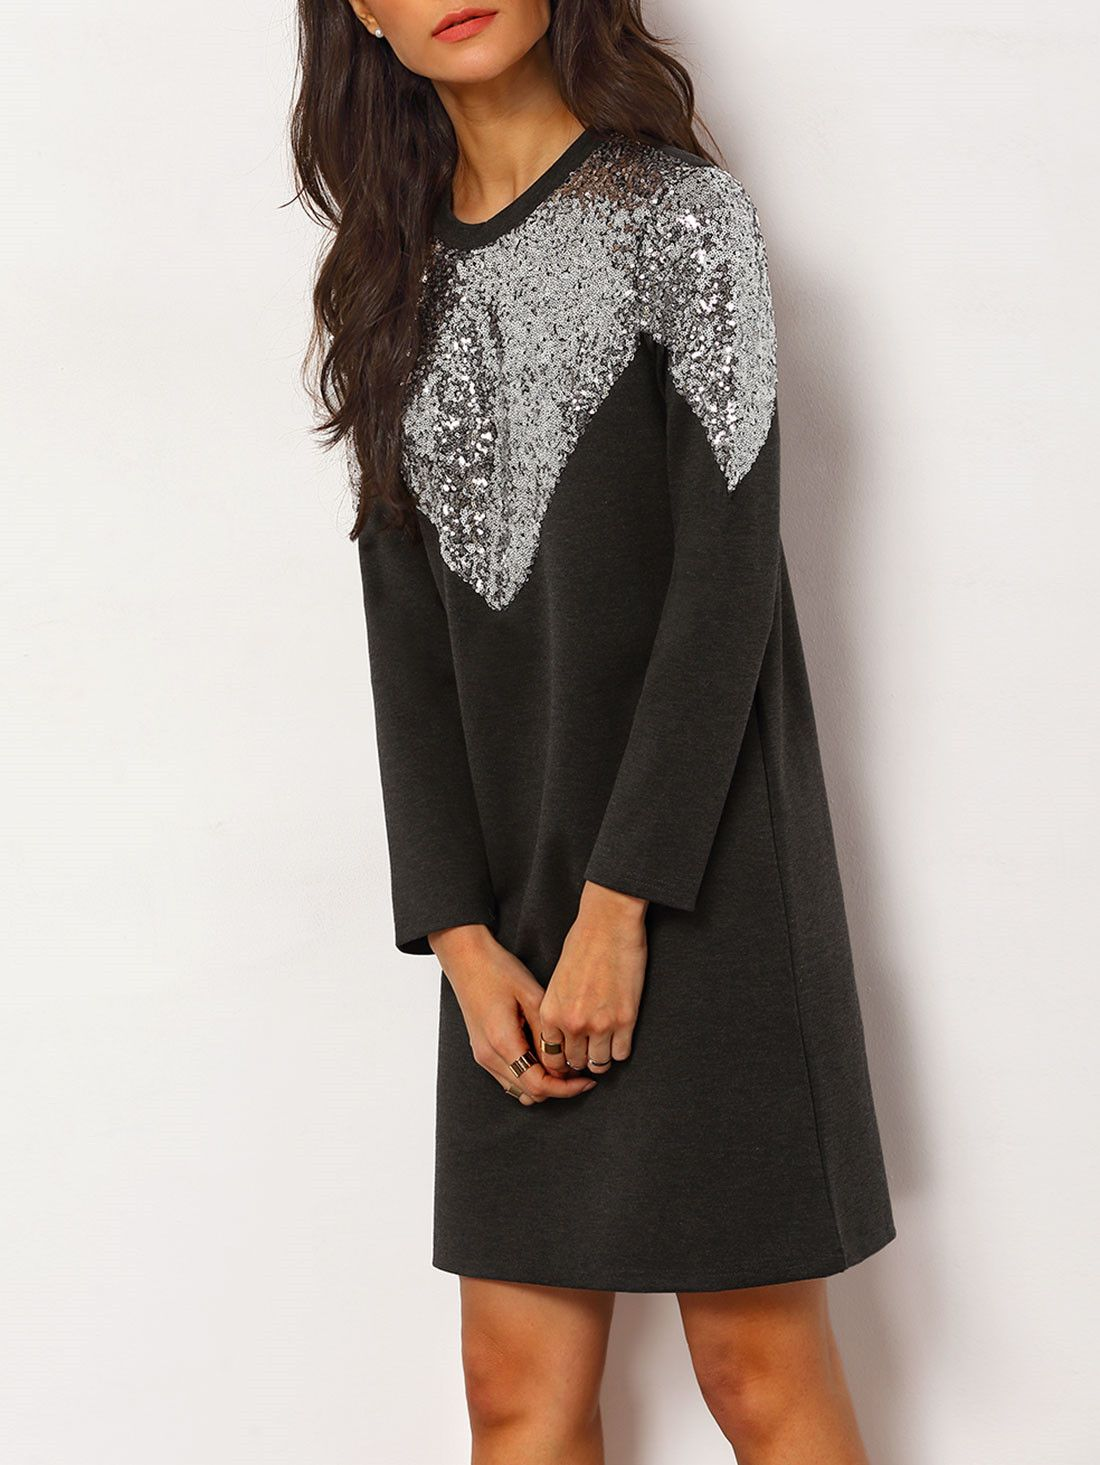 Black crew neck sequined slim dress dress online fall winter and